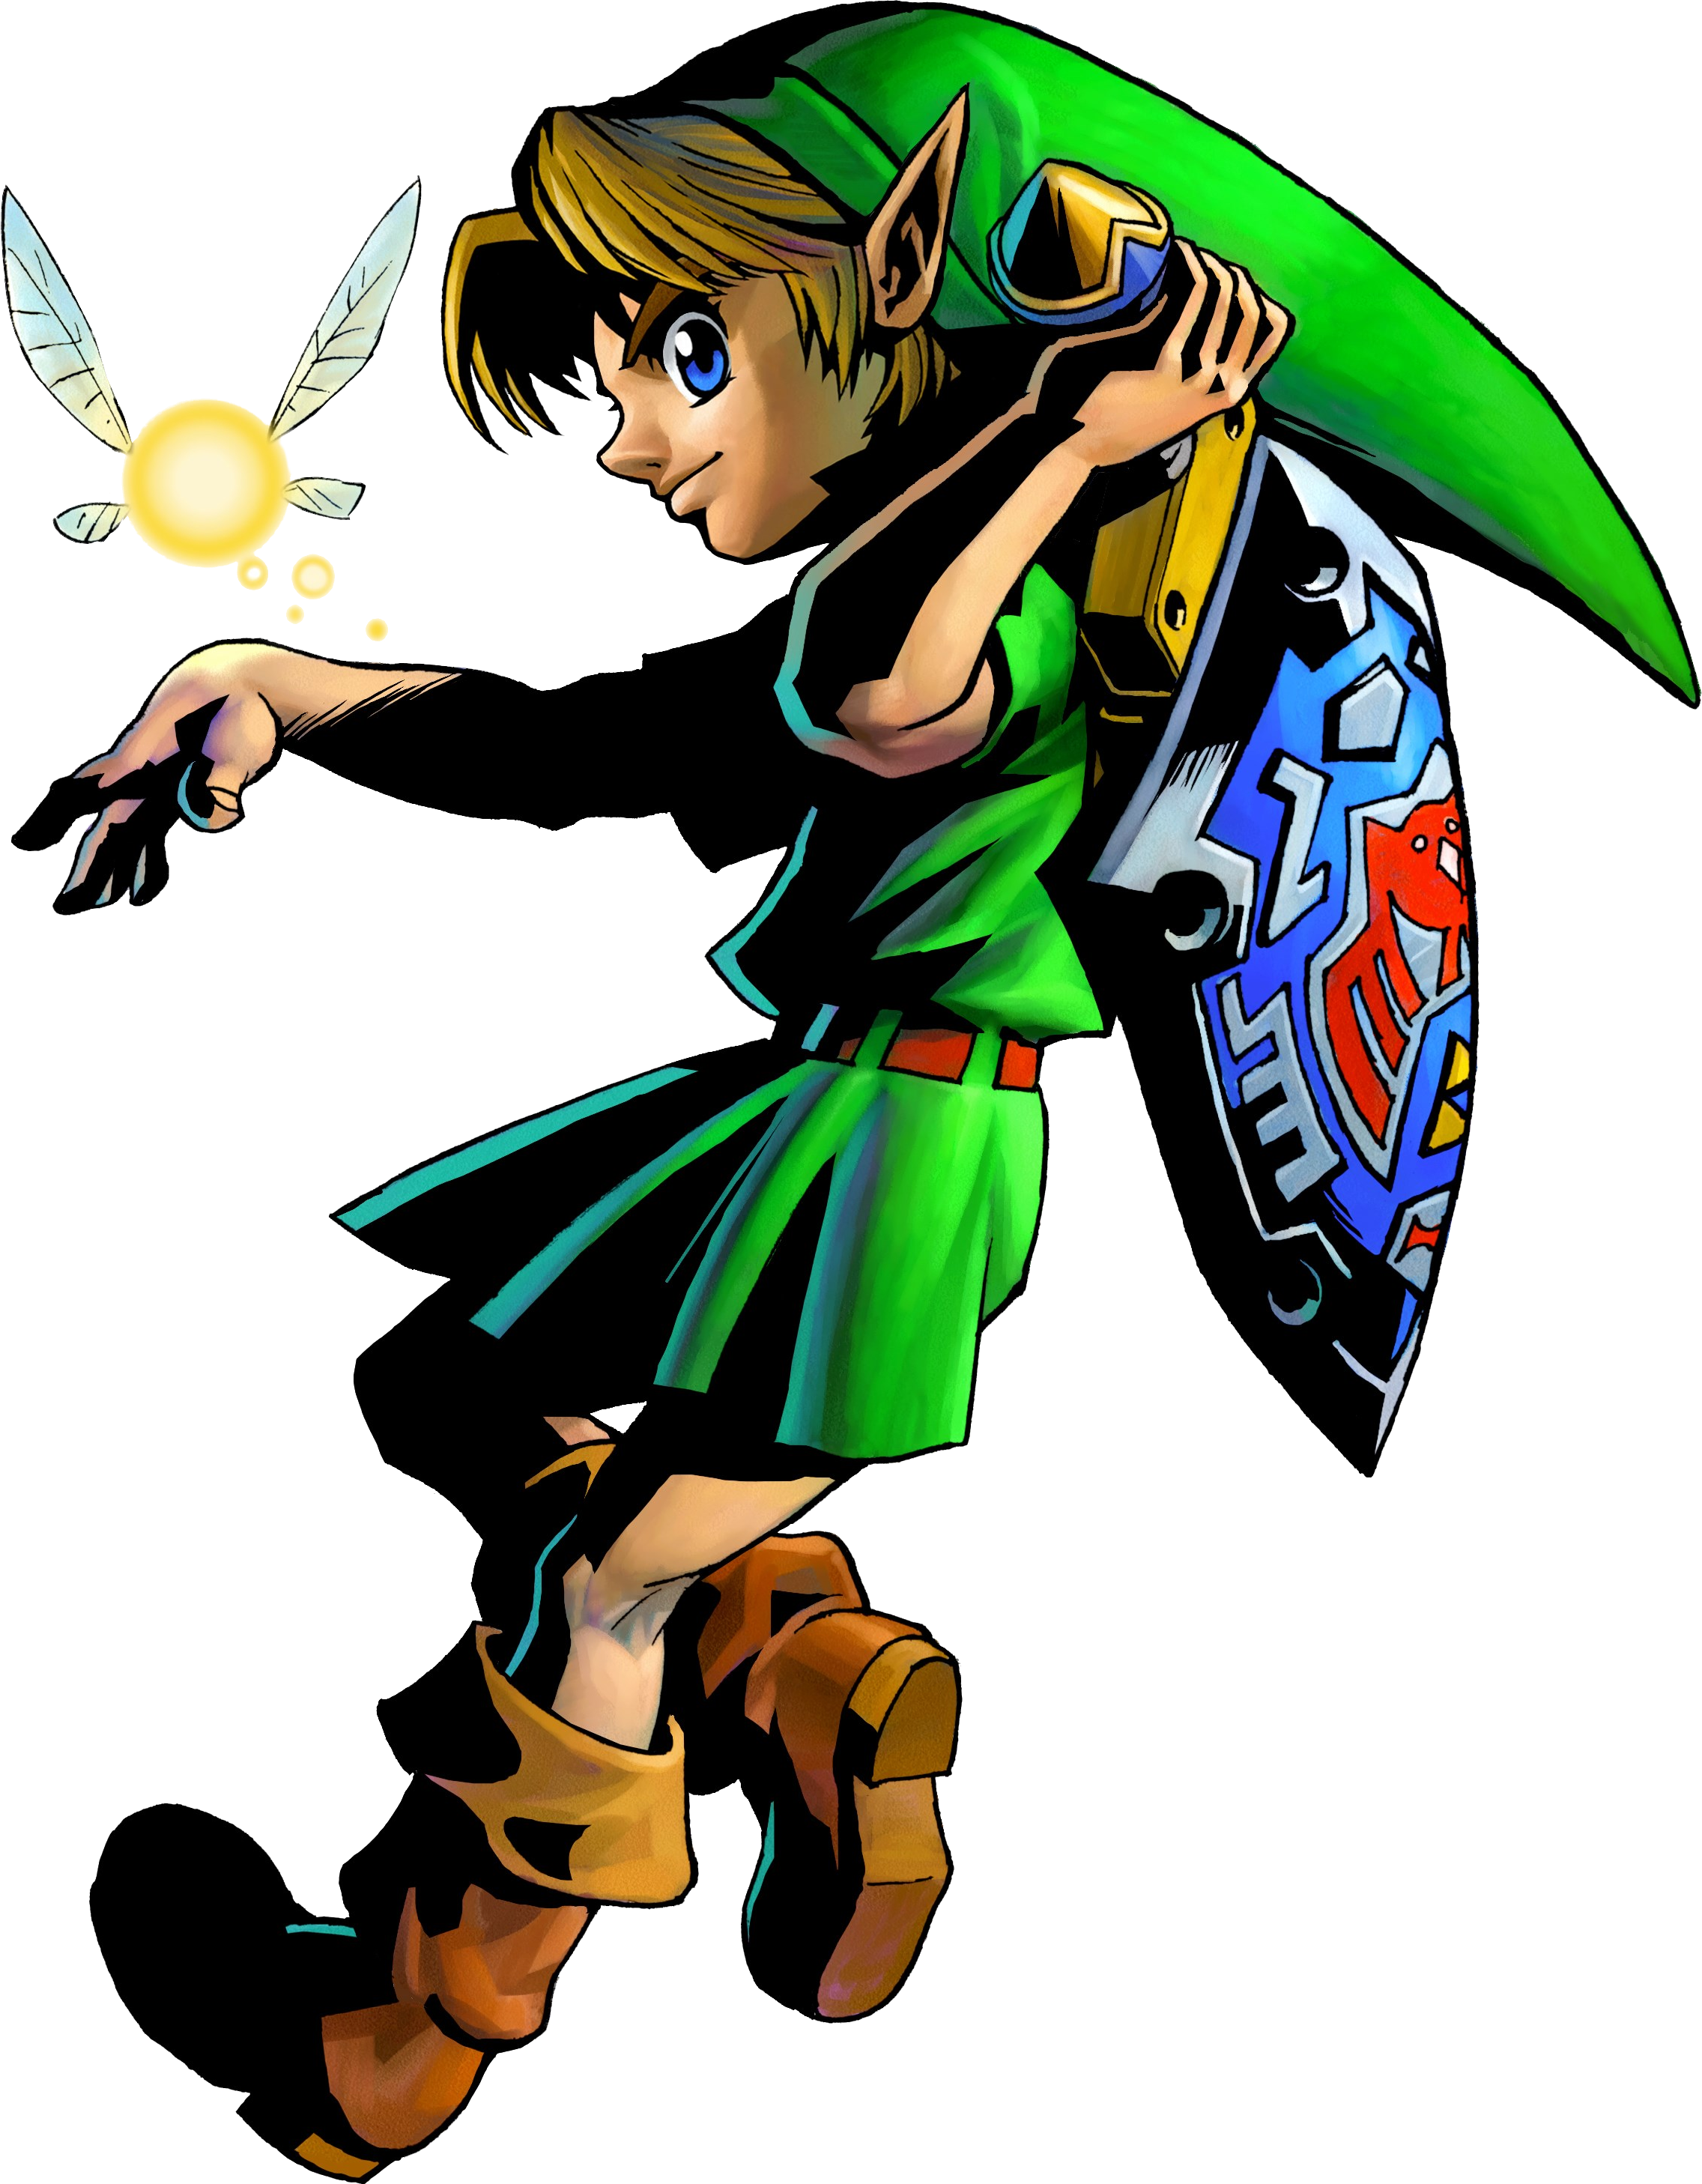 Transparent link child. Png images in collection